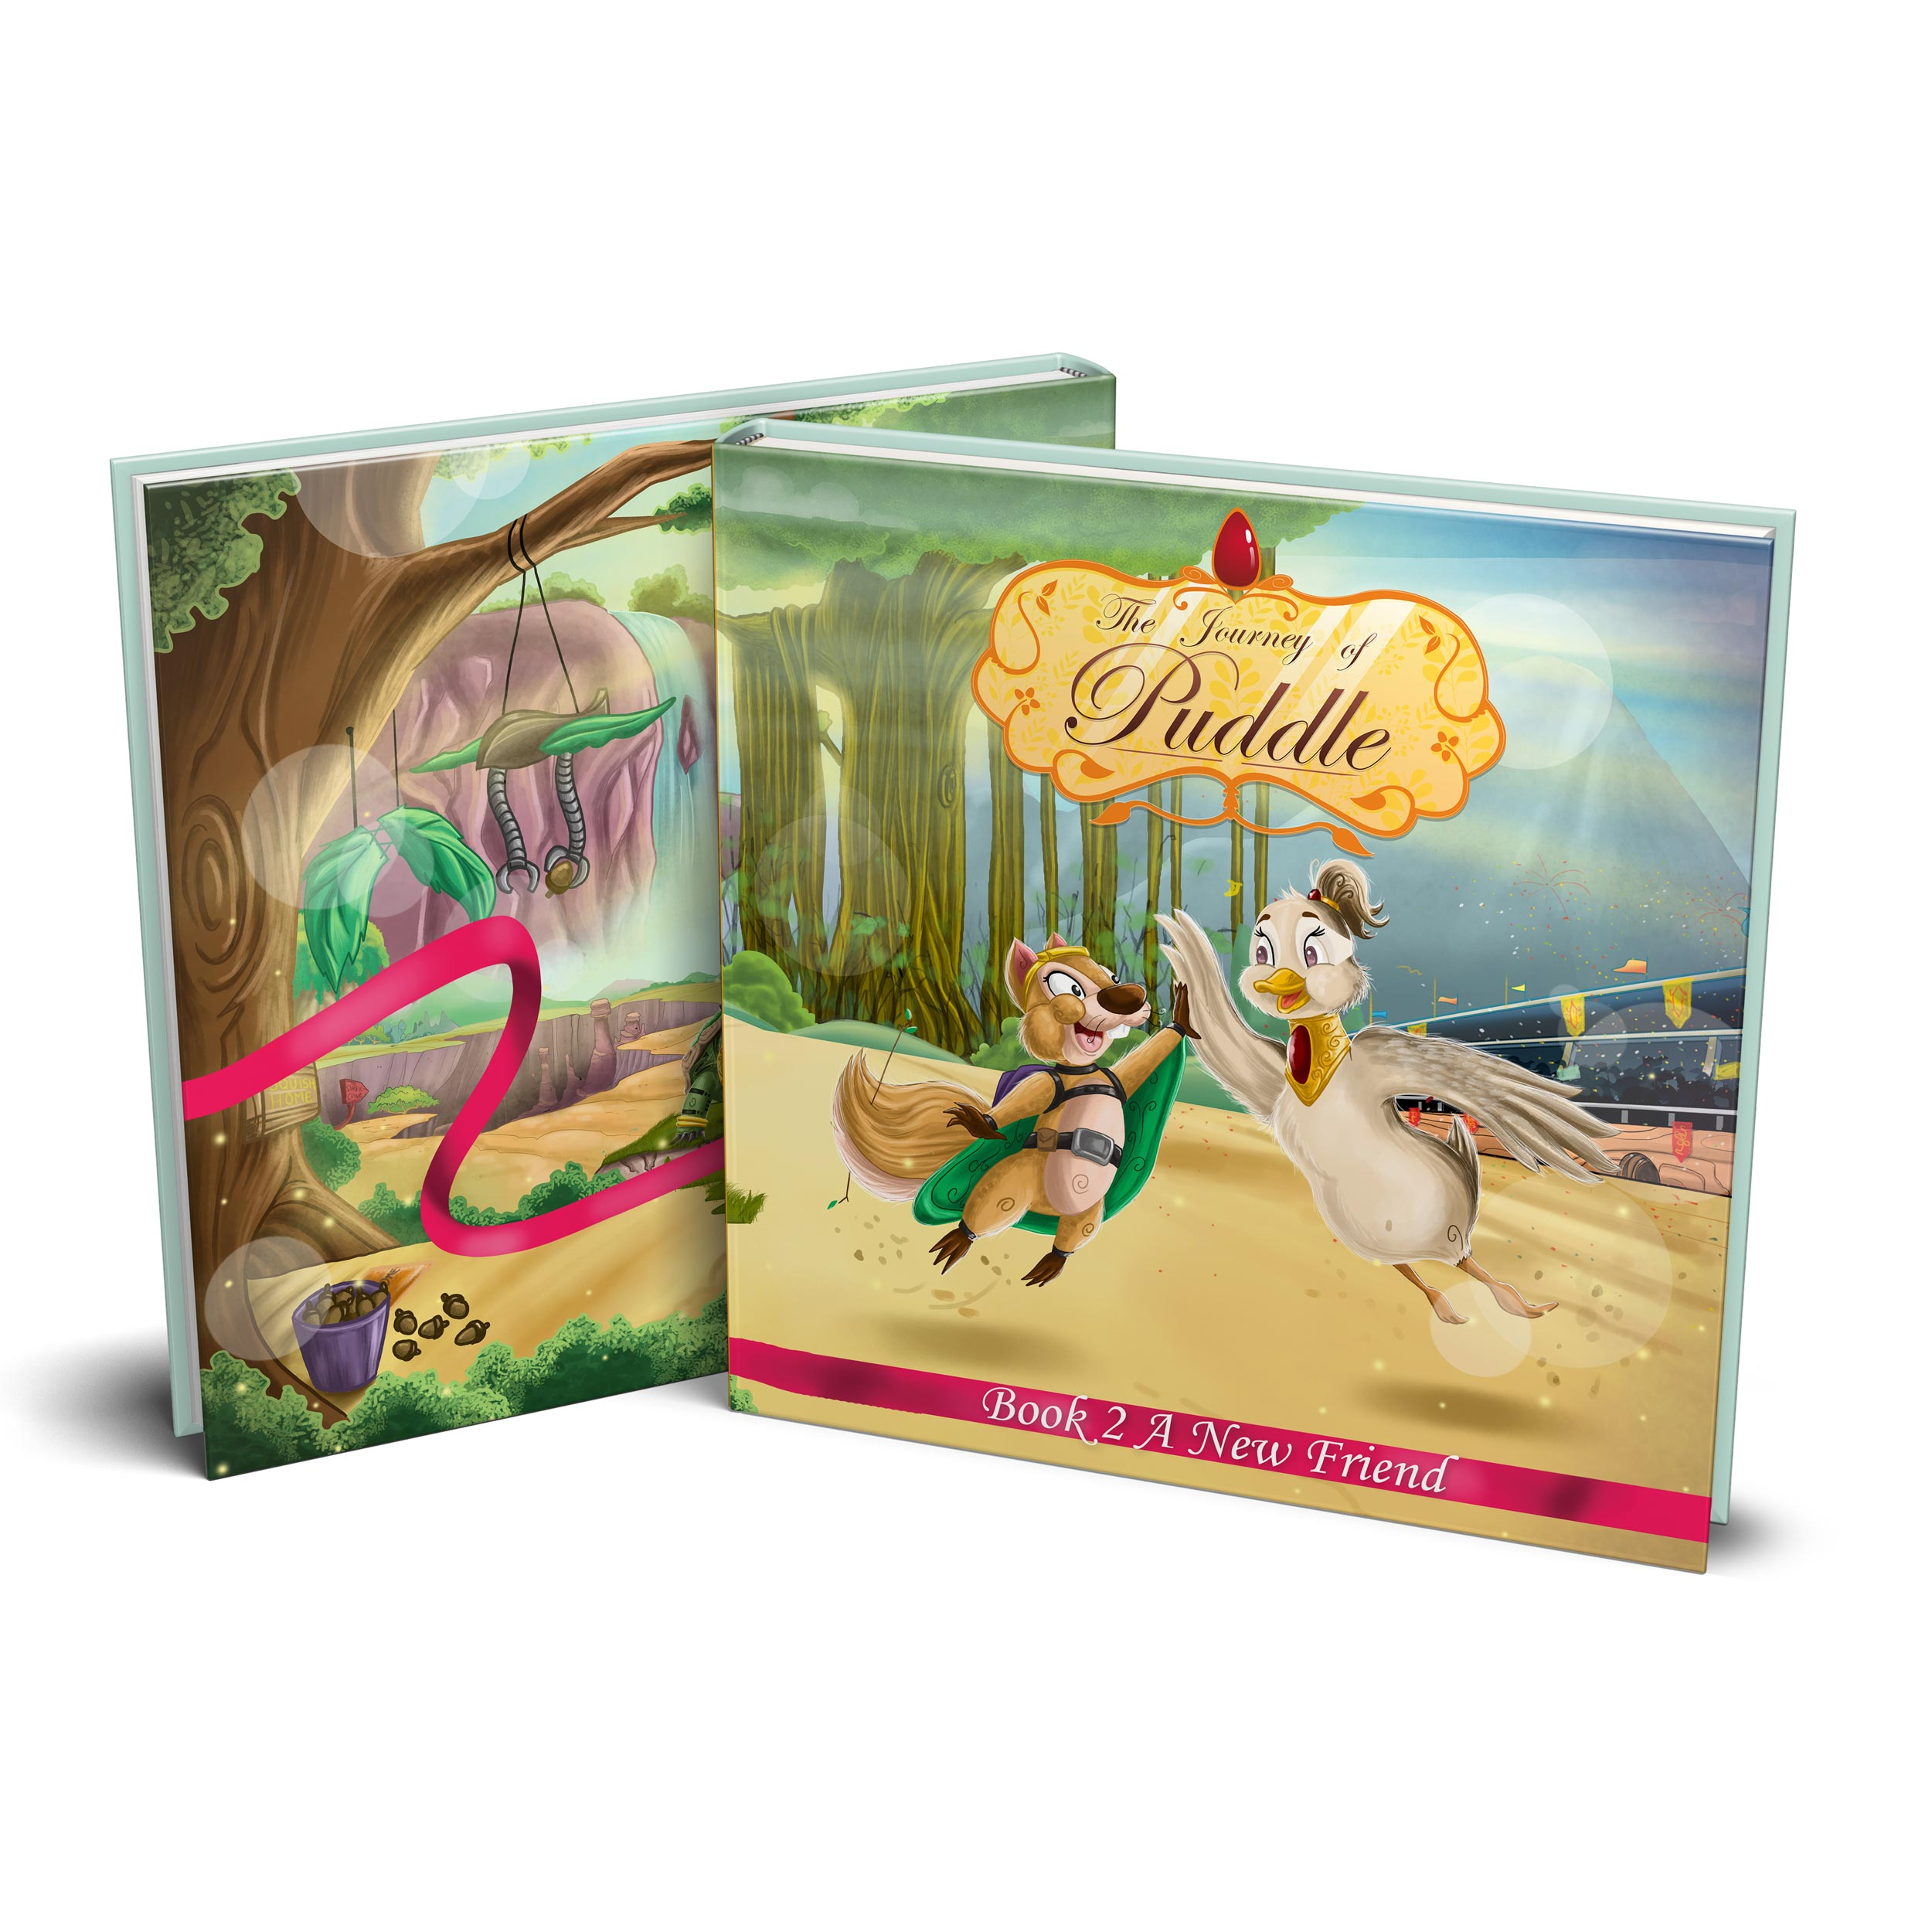 journey-of-puddle-christian-illustrated-children-books-book-2-buy-now.jpg